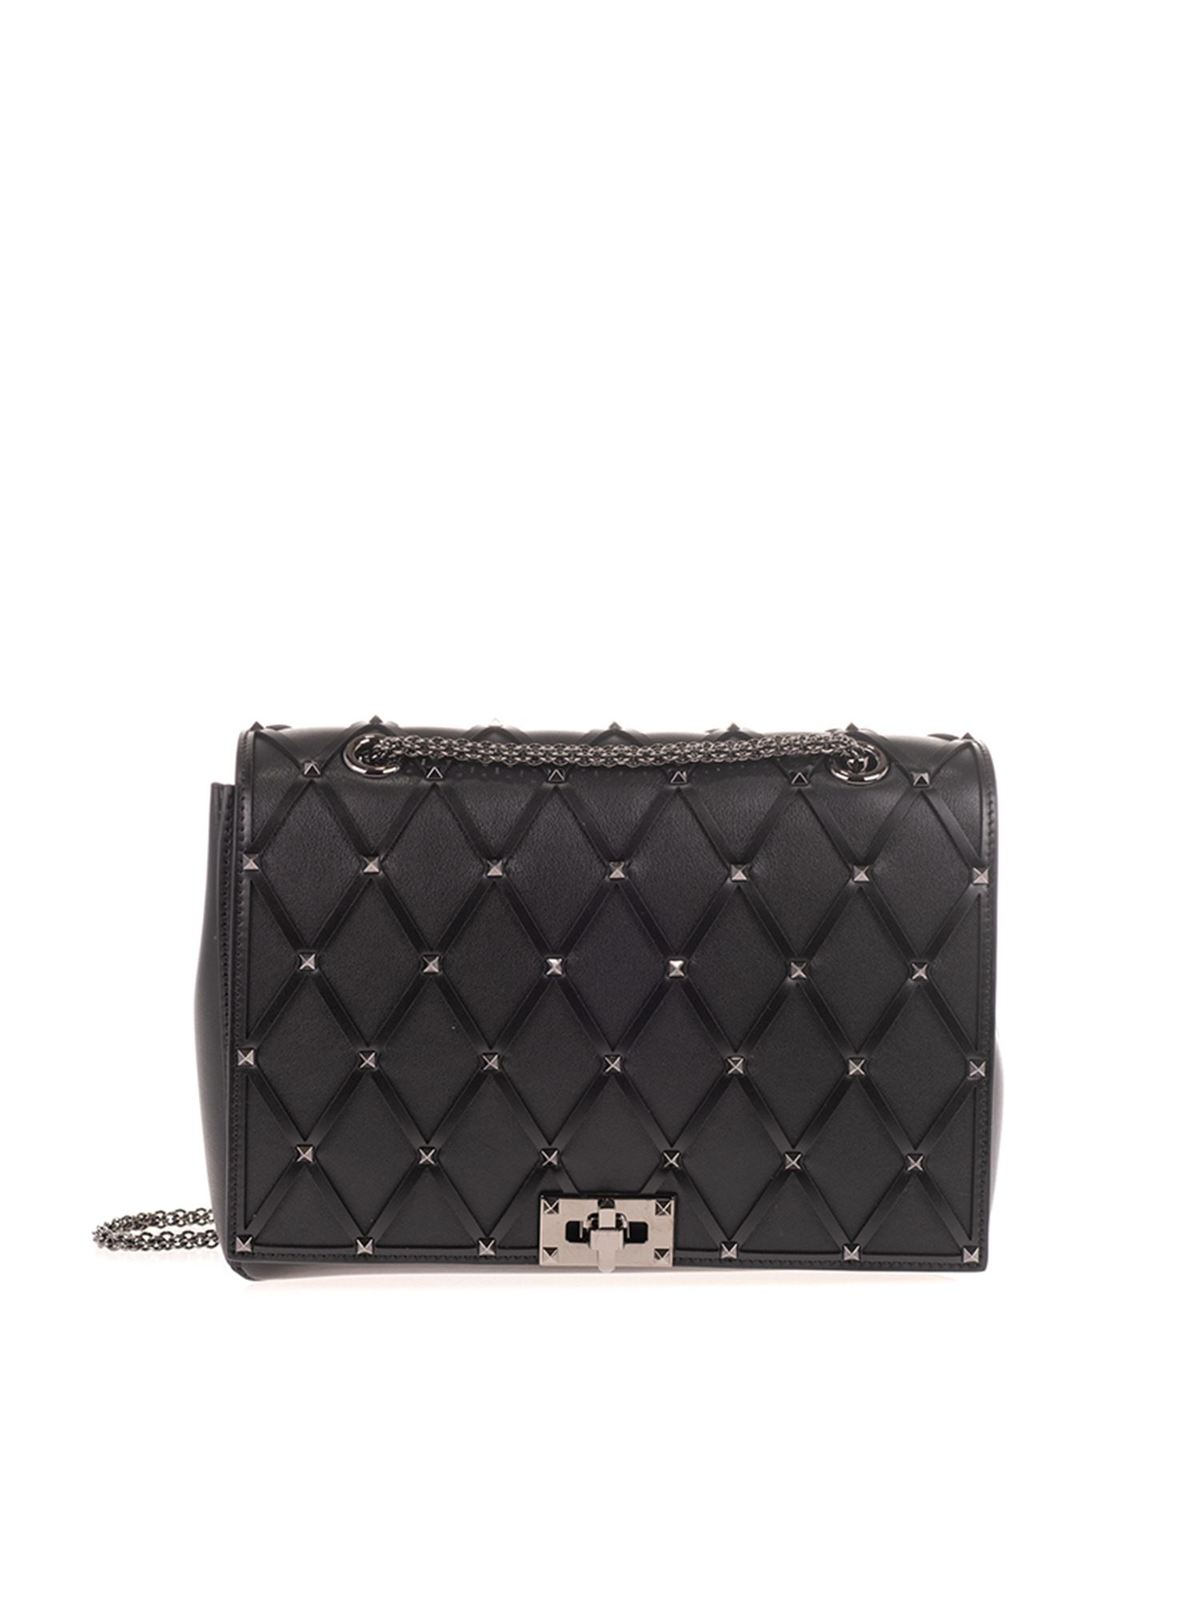 VALENTINO BEEHIVE CHAIN BAG IN BLACK